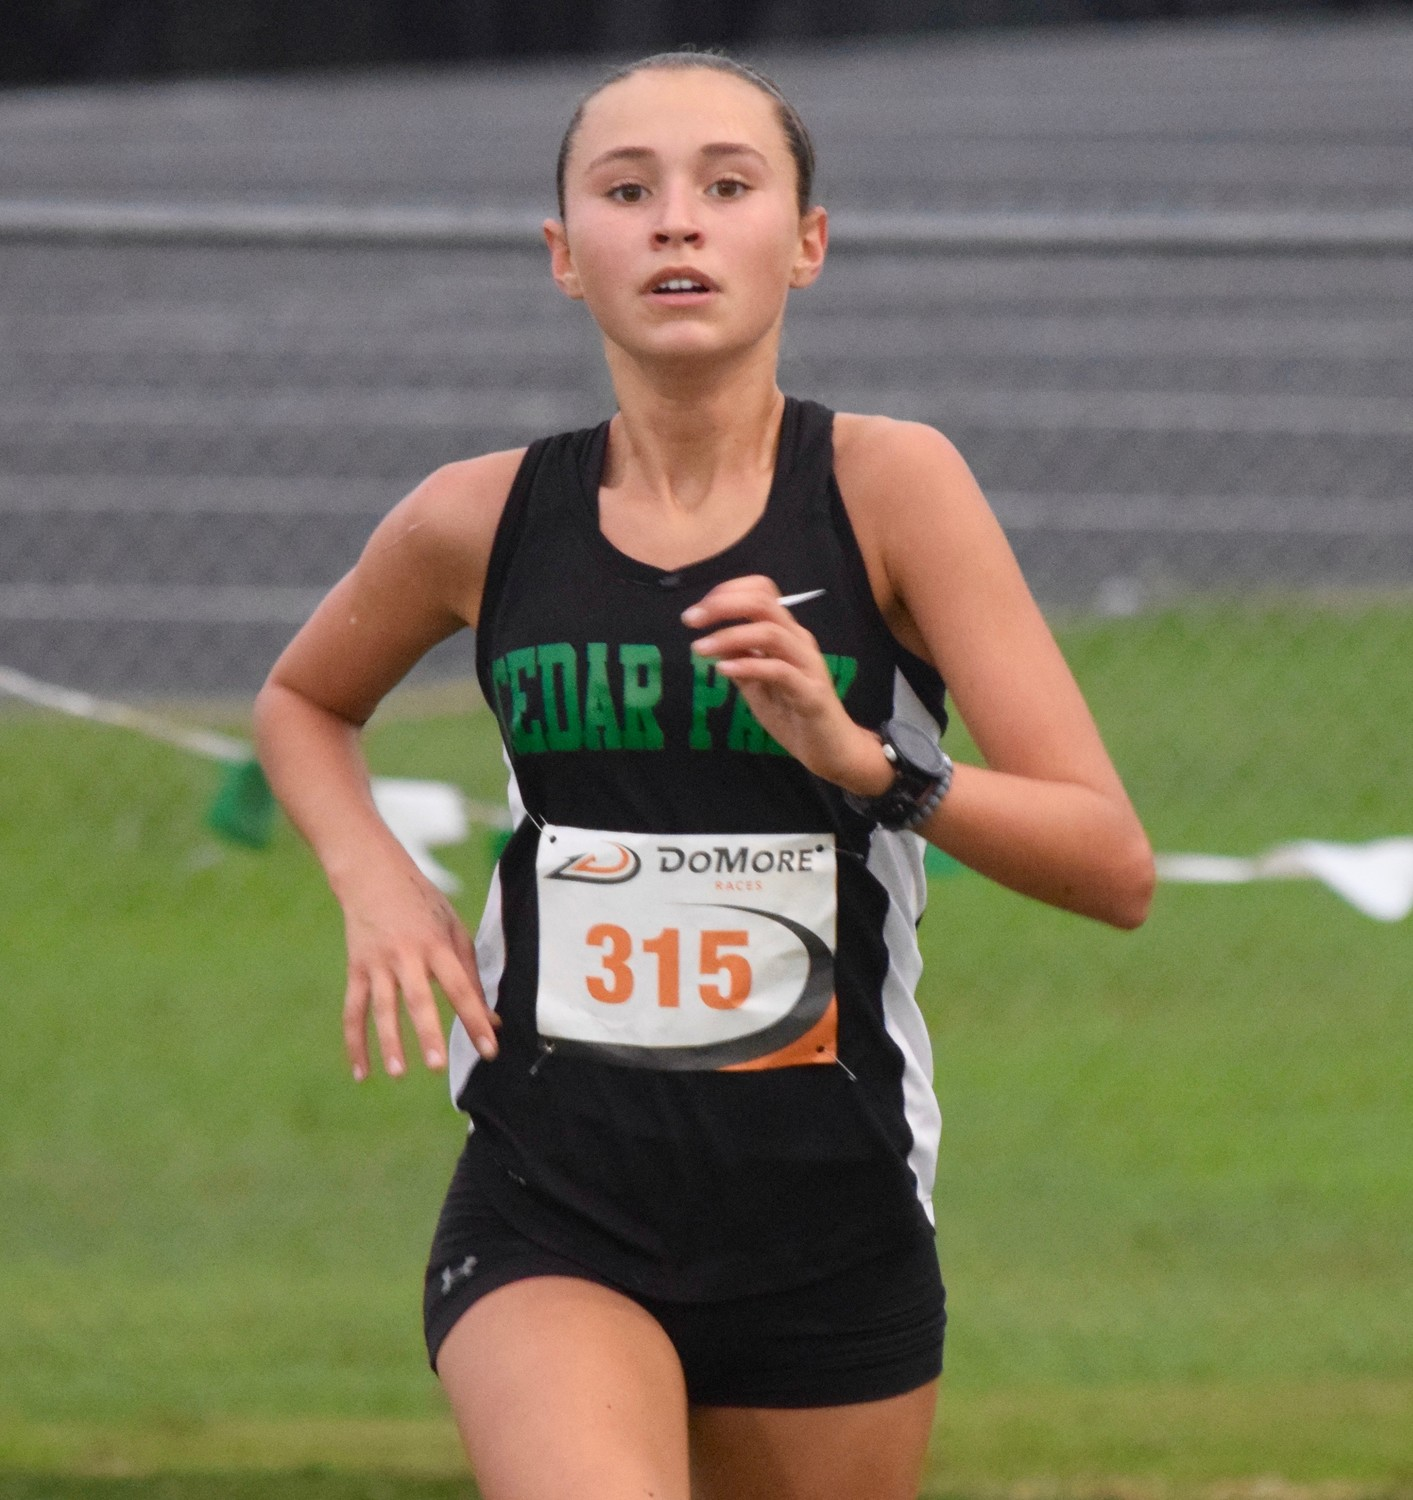 Cedar Park junior Gracie Hall finished 9th at the Cedar Park XC Invitational on Saturday with a time of 19:00.1.